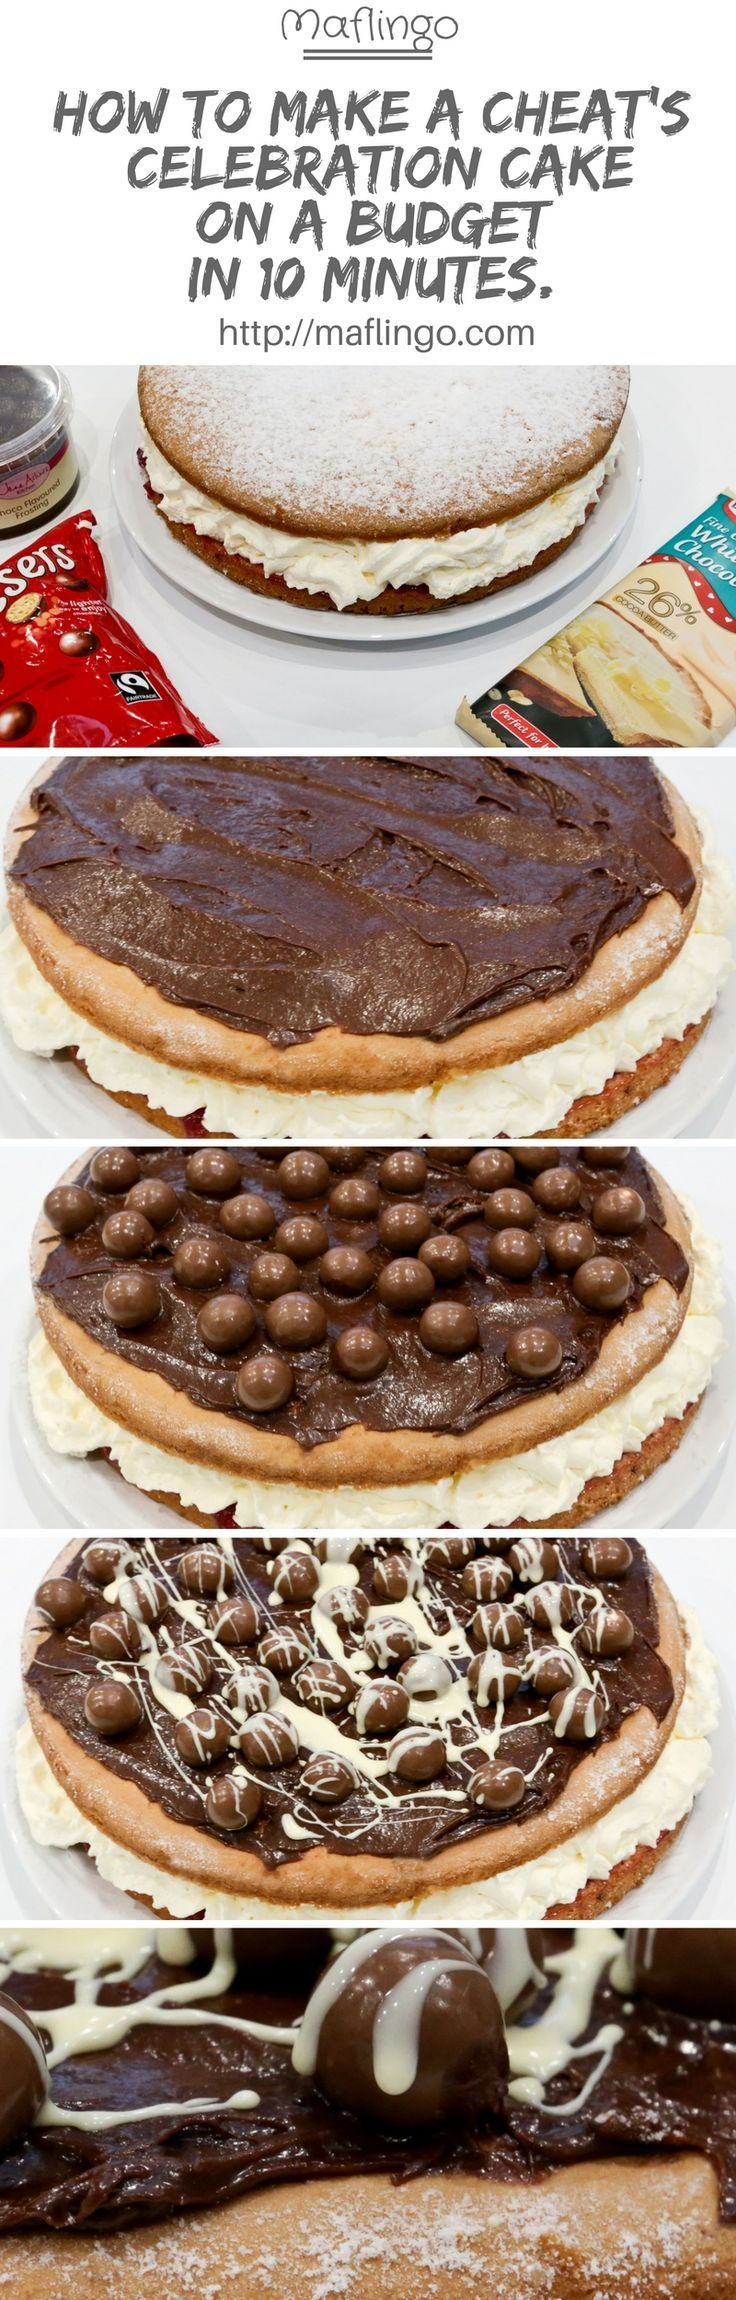 How to make a cheat's birthday celebration cake for less than £10 in less than 10 minutes. The budget way to have a fabulous, delicious chocolate Malteser fresh cream sponge cake.  Save time and save money to make this delicious Victoria Sponge Cake. Clic